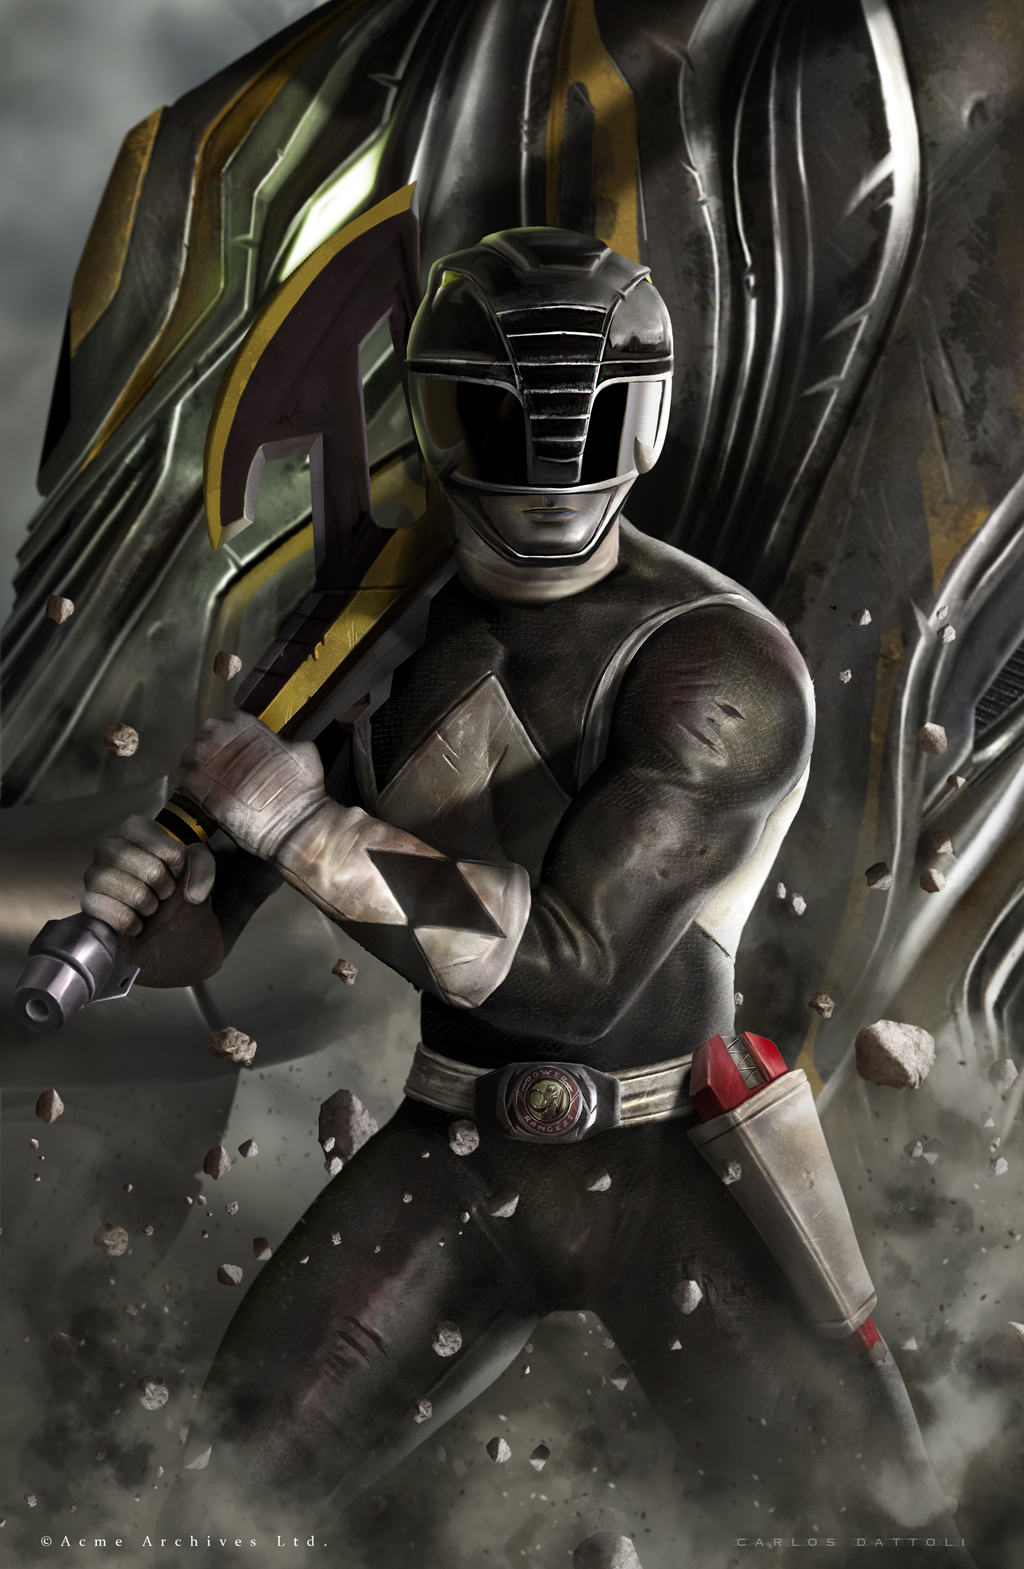 Black Ranger by CarlosDattoliArt